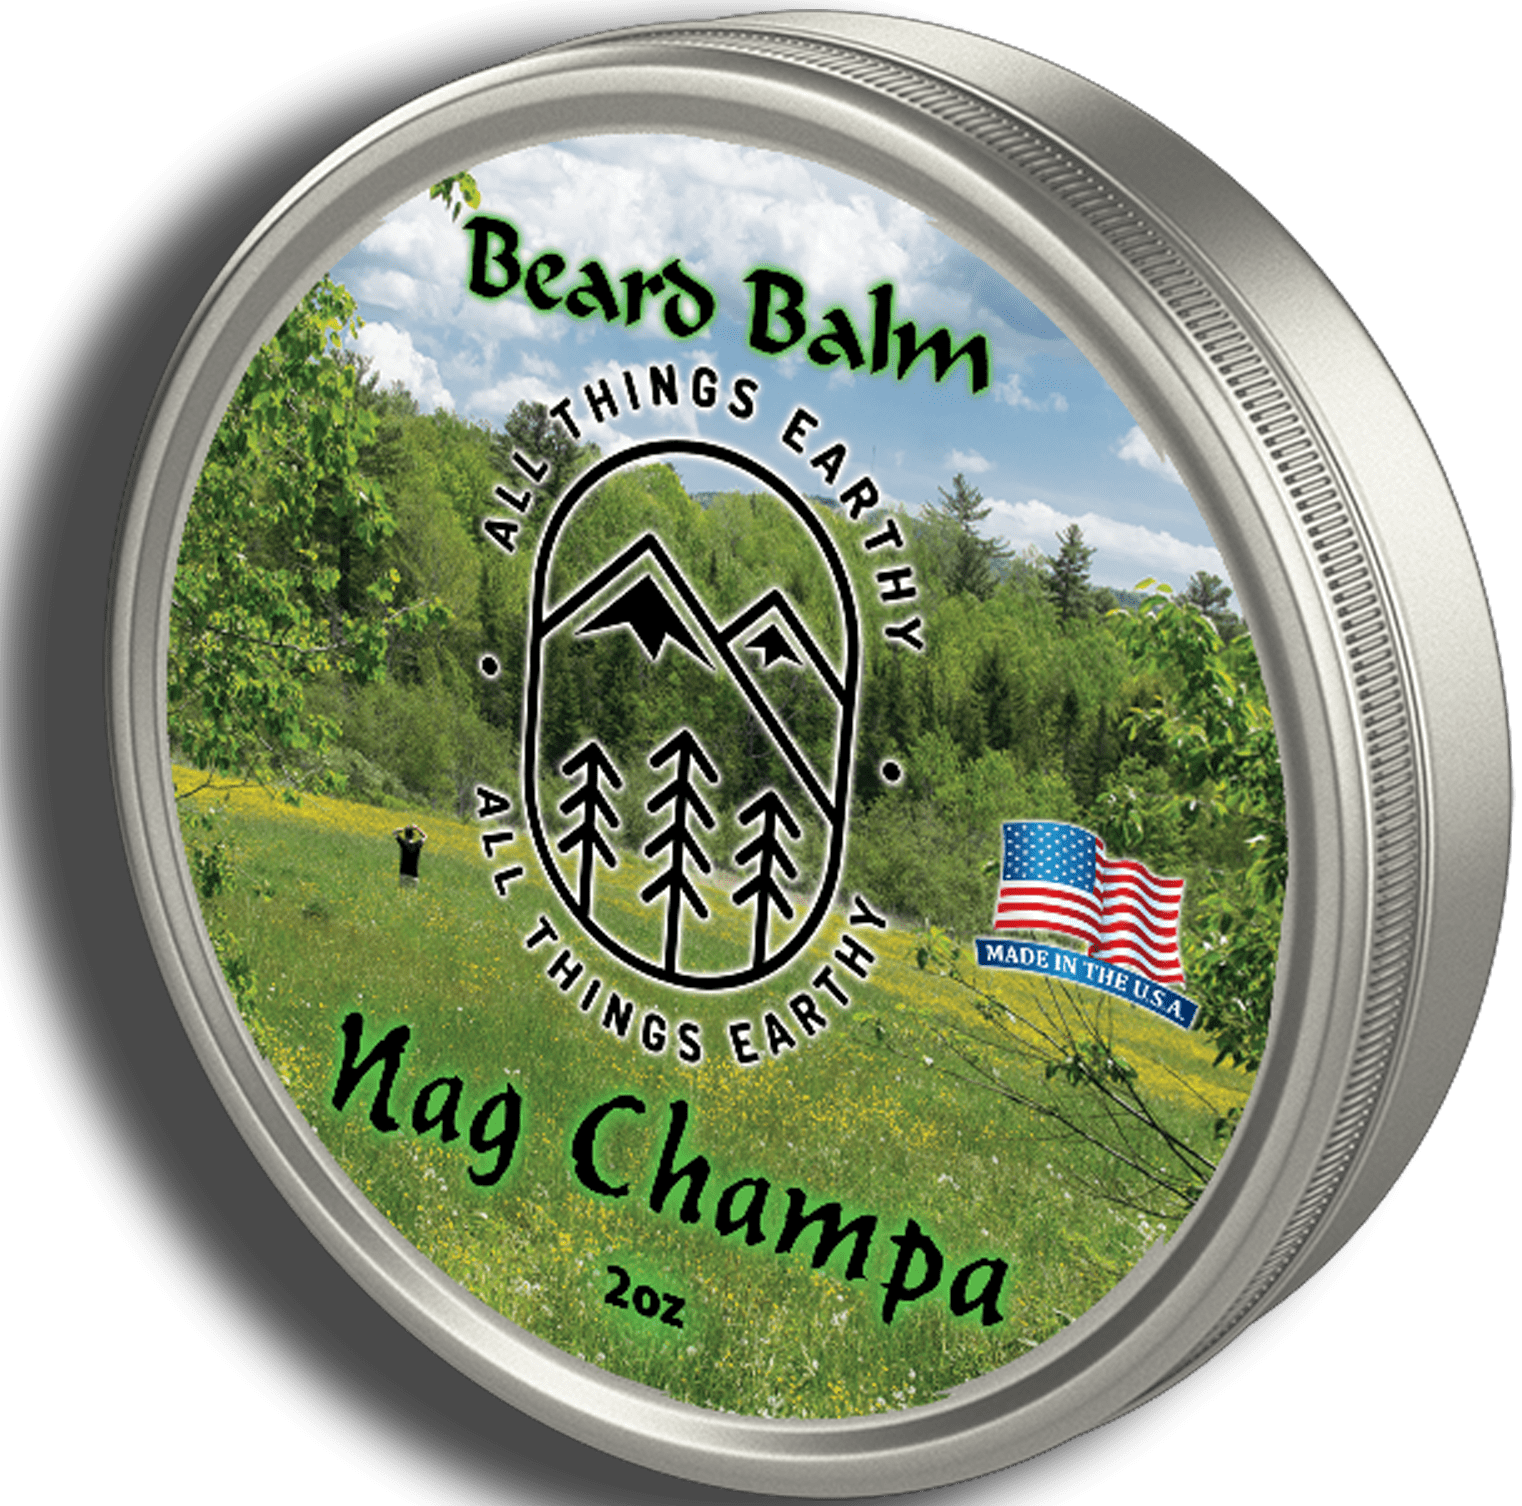 Nag Champa Beard Balm 2oz - All Things Earthy